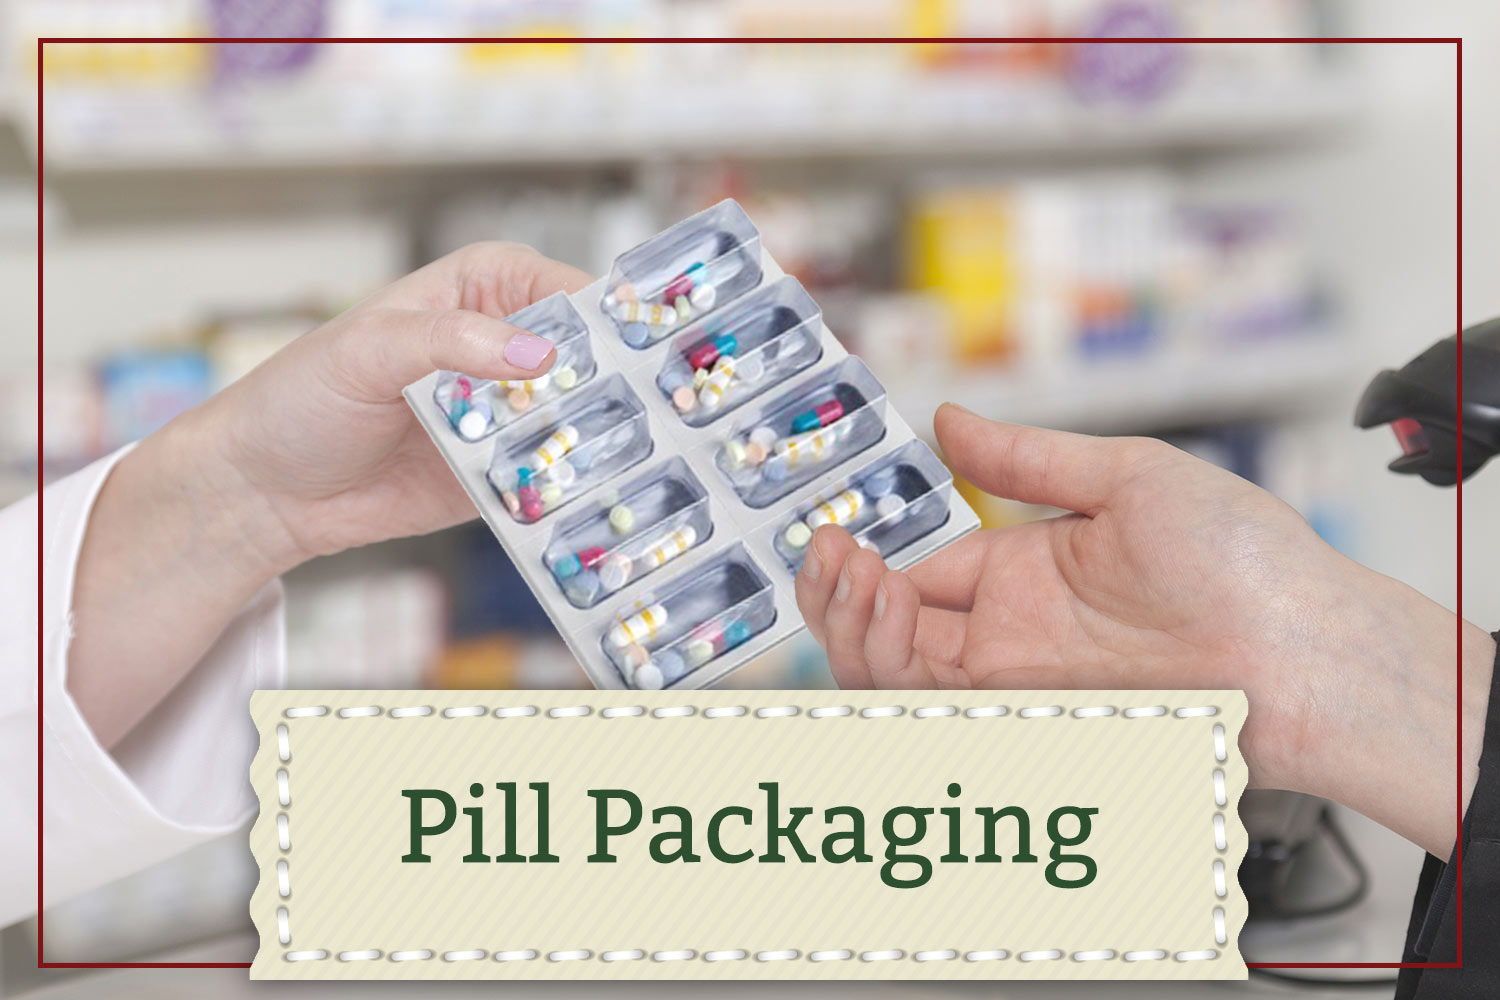 pill-packaging-service.jpg